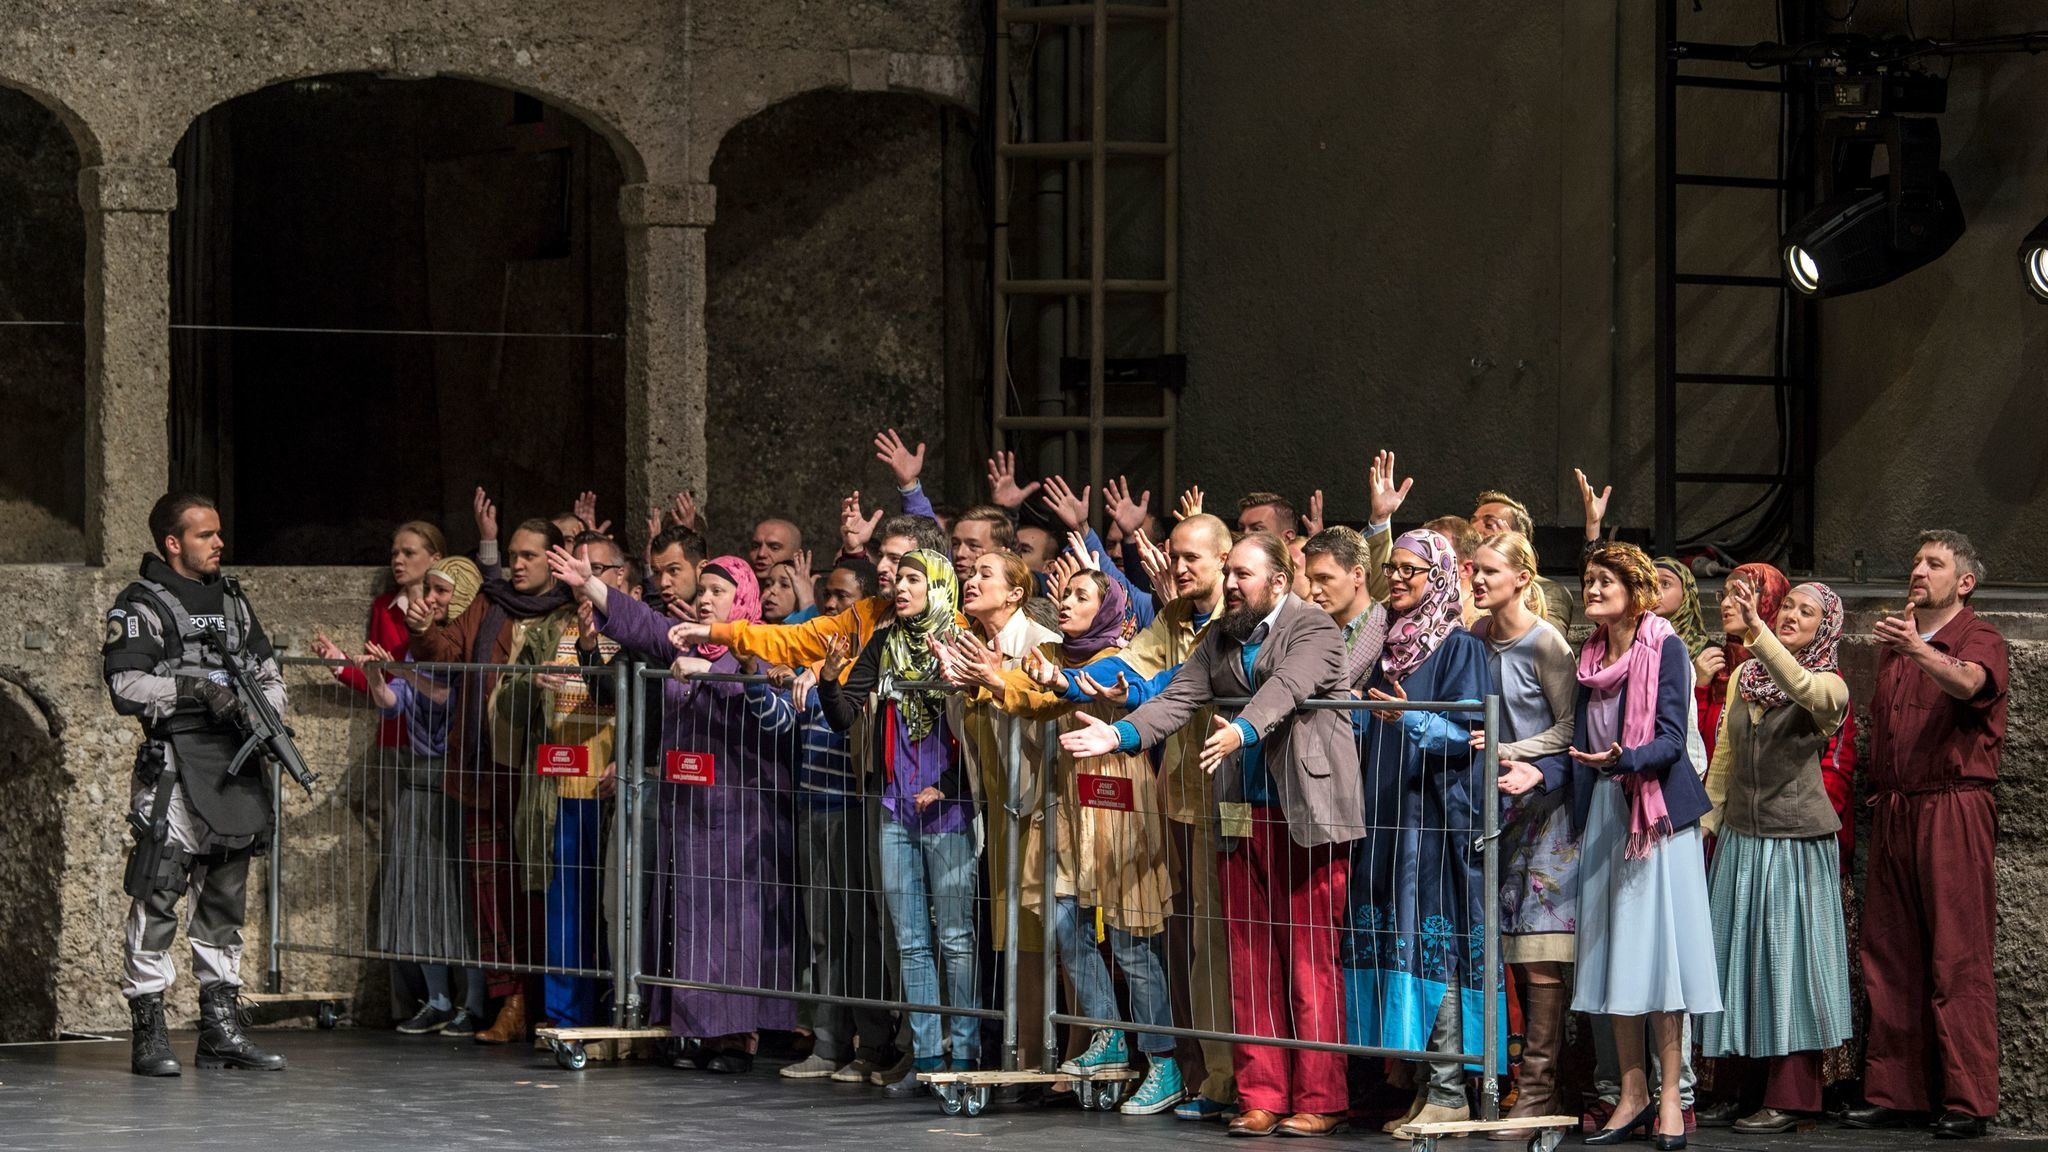 """Peter Sellars' Salzburg Festival production of Mozart's """"La Clemenza di Tito"""" reinterpreted to reflect the modern émigré crisis in Europe."""